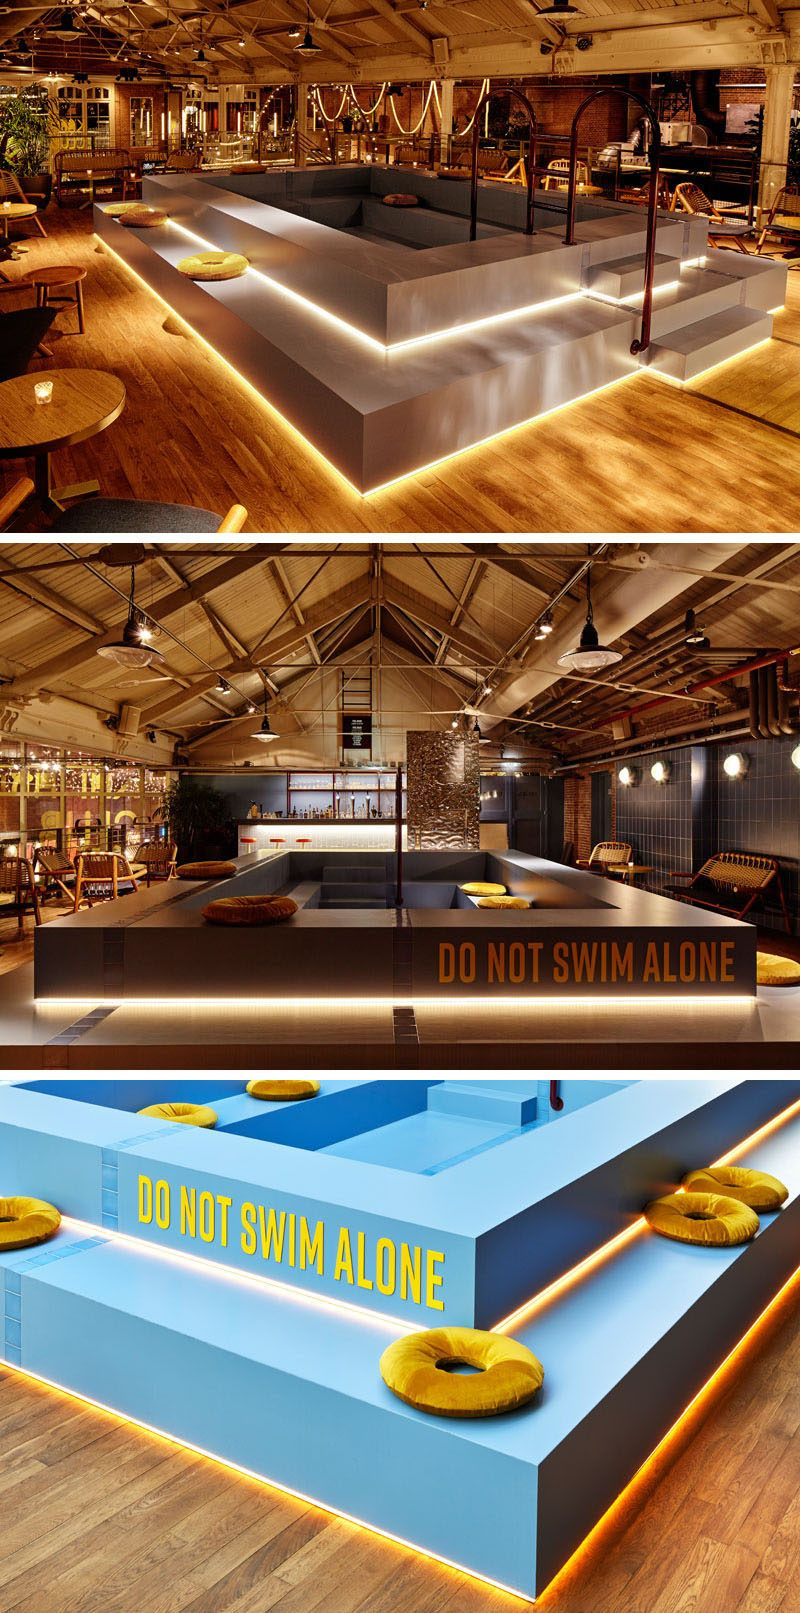 This Former Tram Depot In Amsterdam Has Been Transformed Into A